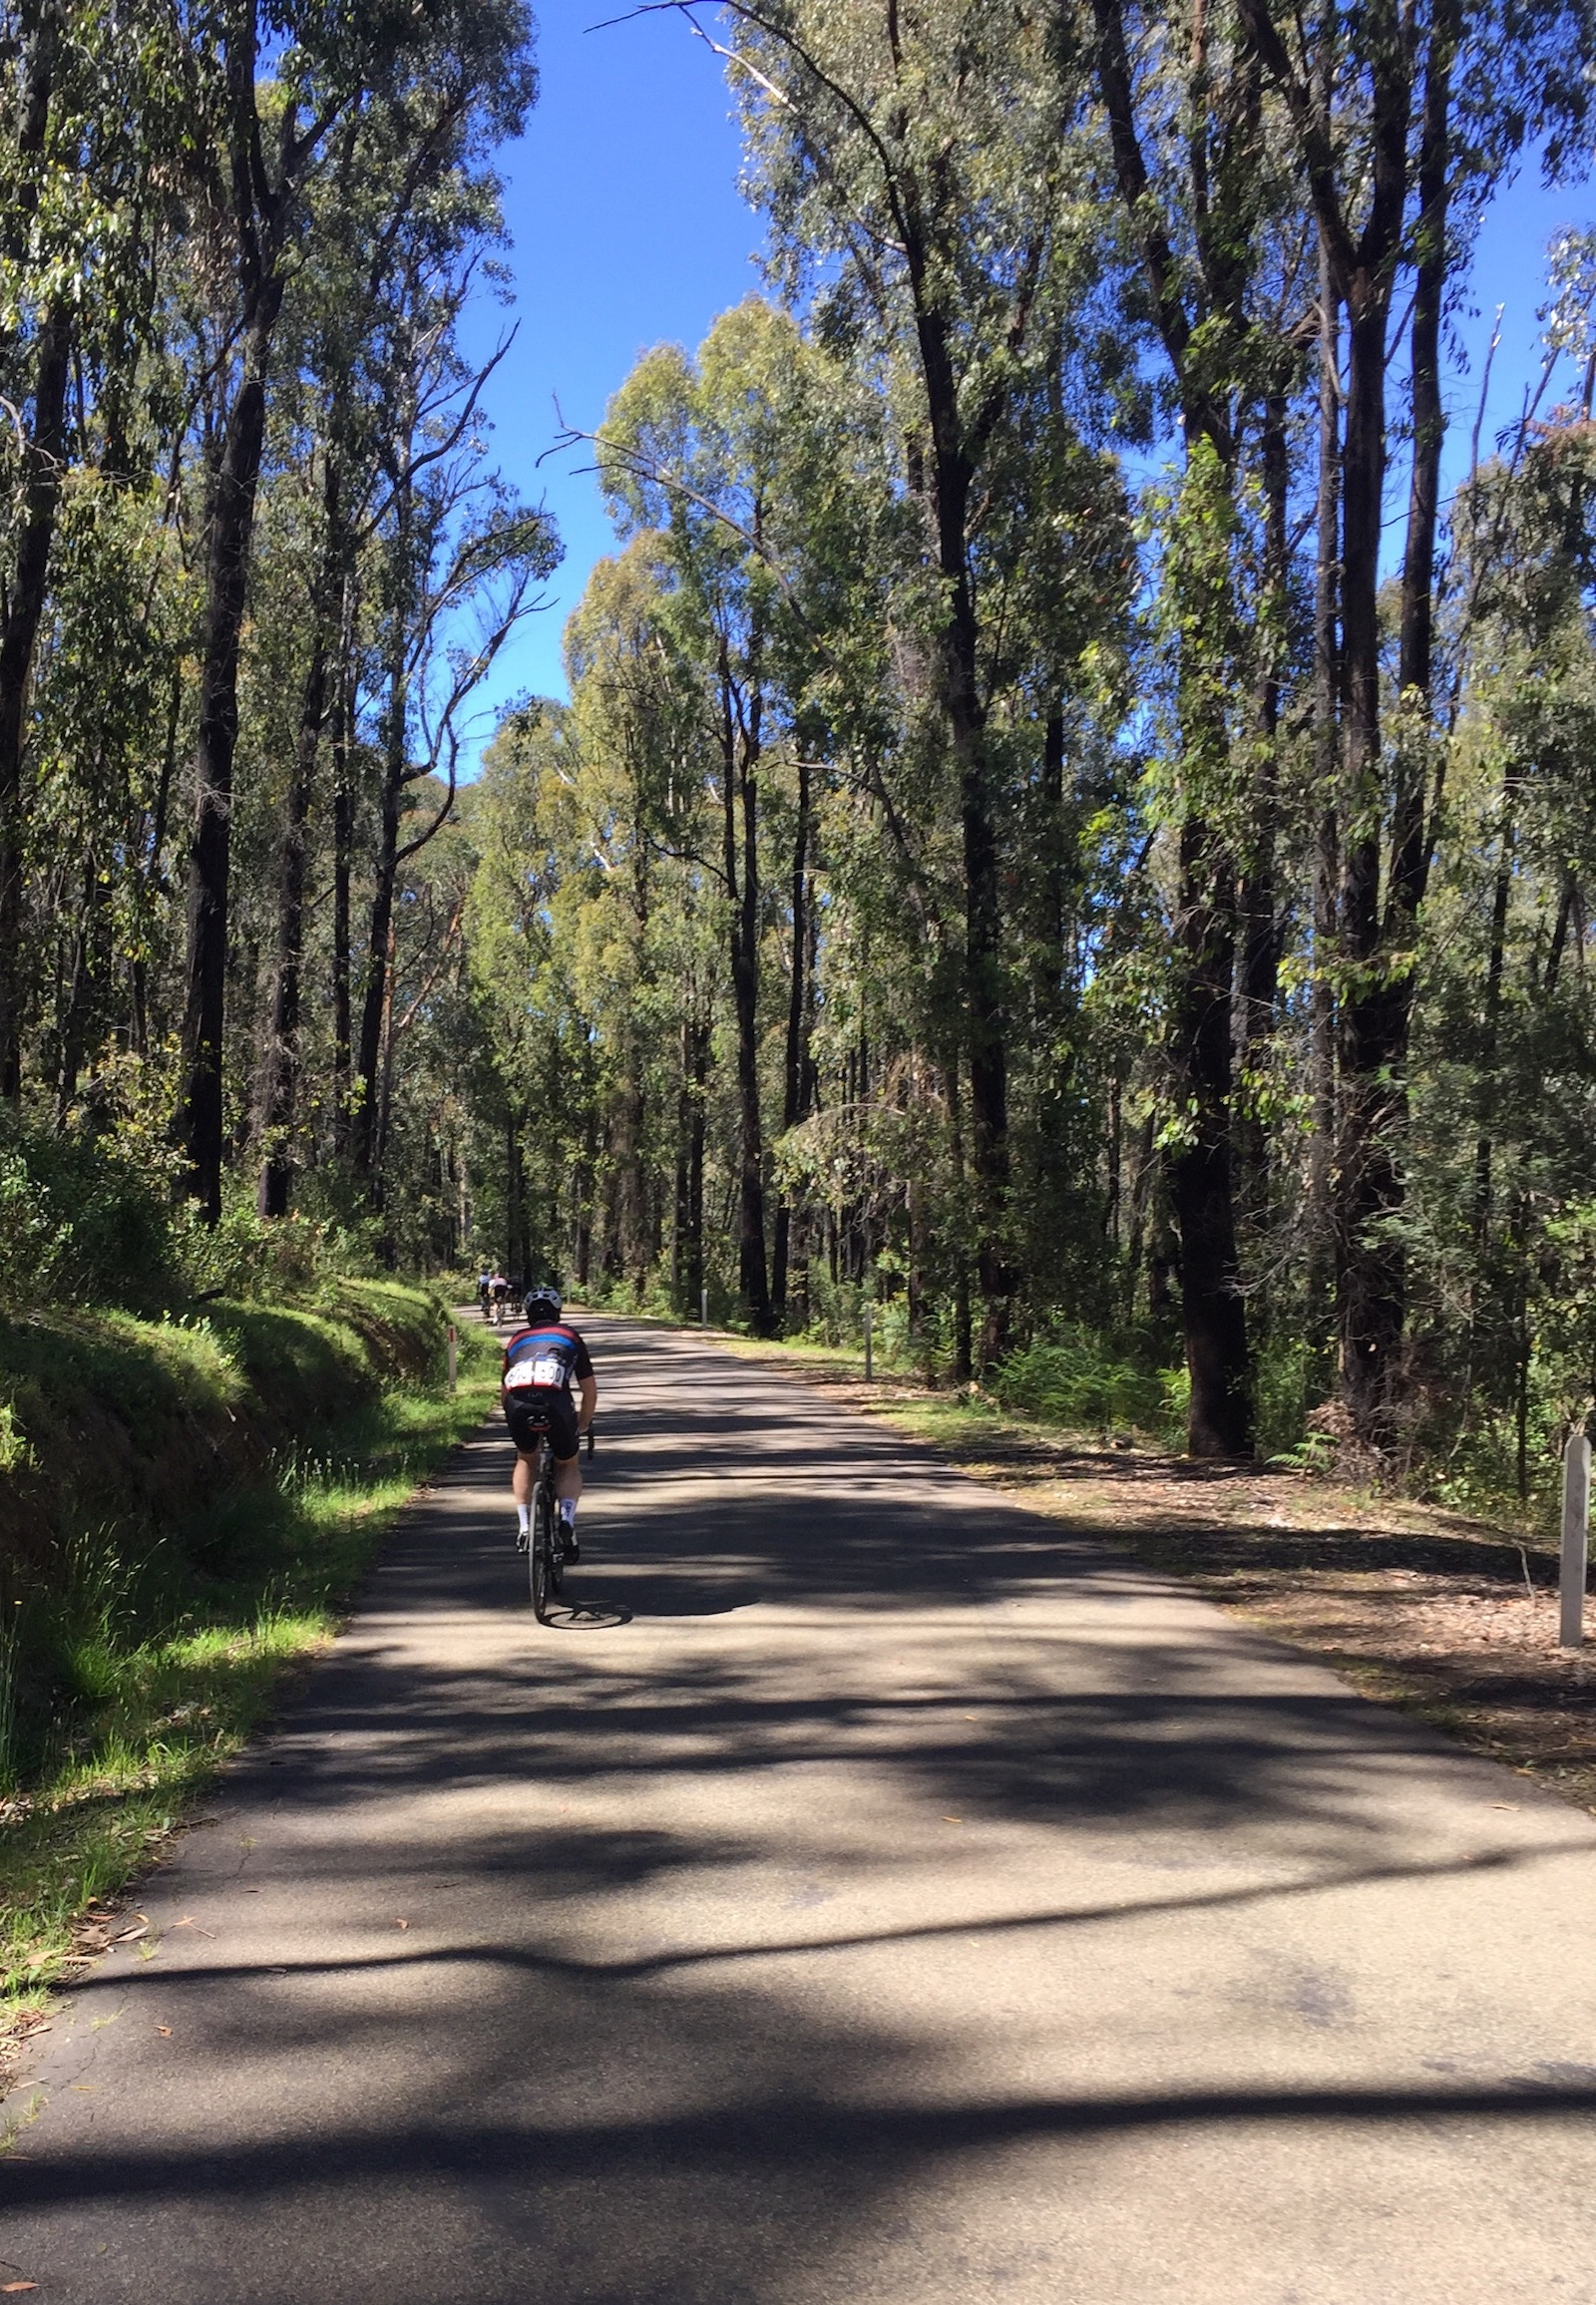 """Richard Bowen, Australia. """"Acheron Way at the 2016 Giro Della Donna. We meandered through here, enjoying the riding in such a beautiful place. I think this photo captures the experience, especially with the vibrant blue sky dominant through the green of the trees. I've had this photo as my iPhone lockscreen image ever since!"""" Smartphone / Action Cam. @ancible"""